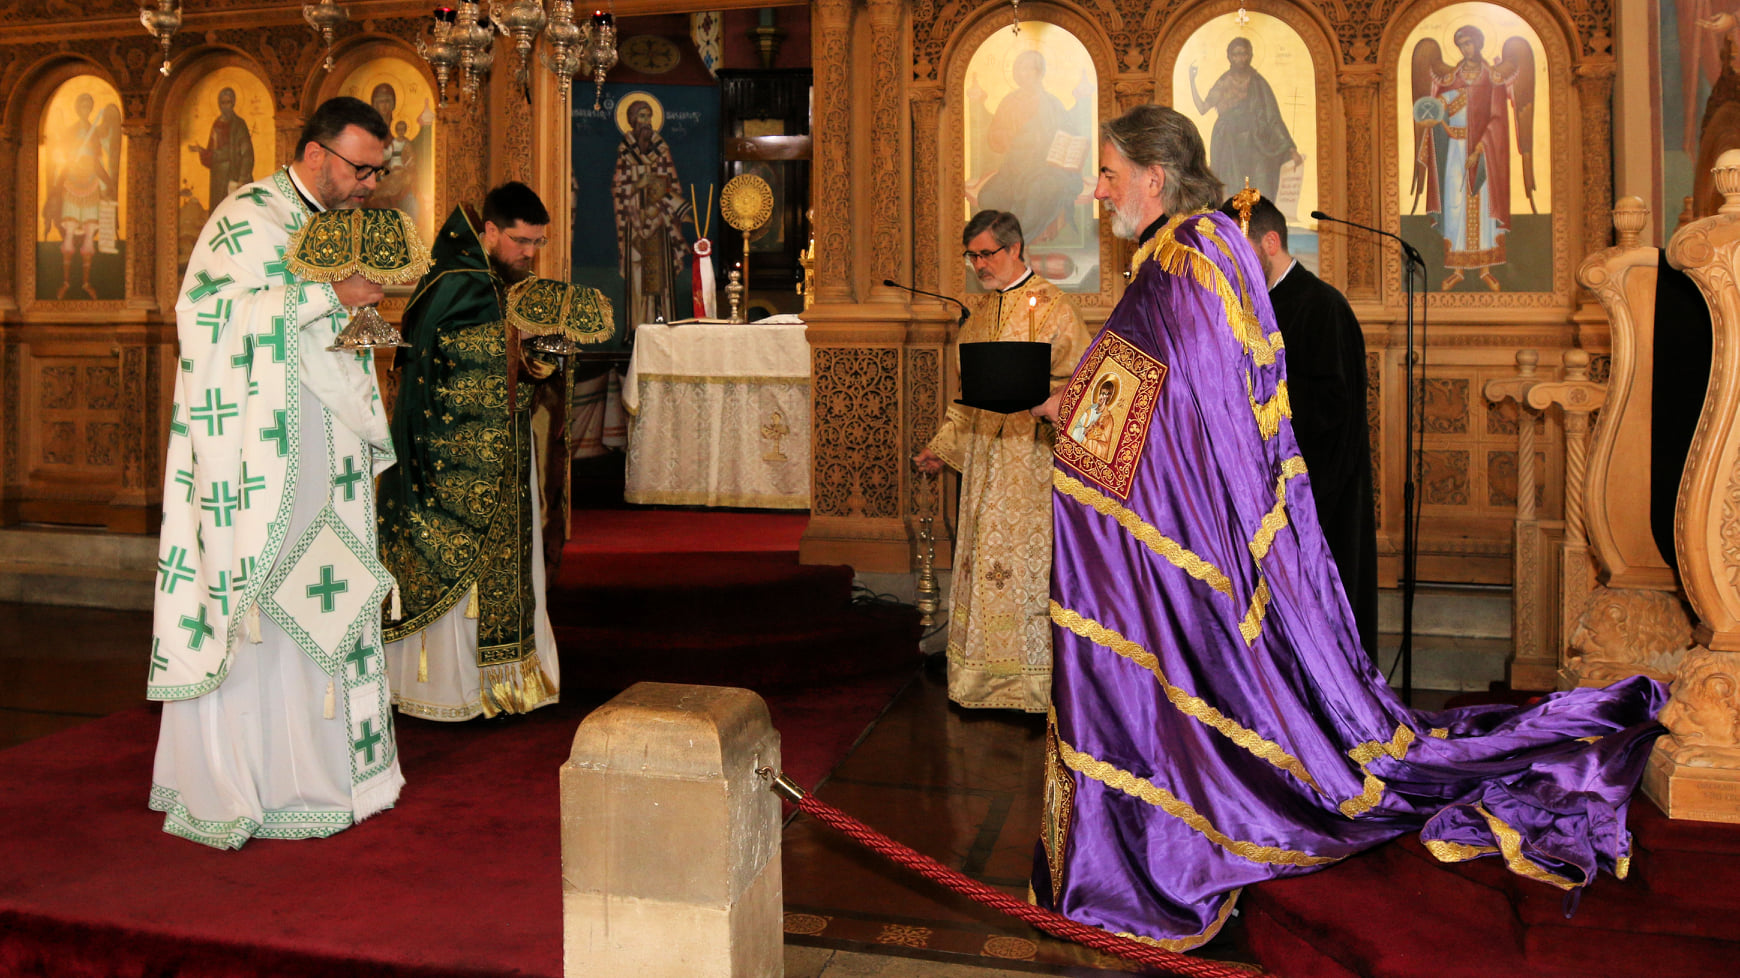 Visit of His Eminence the Archbishop